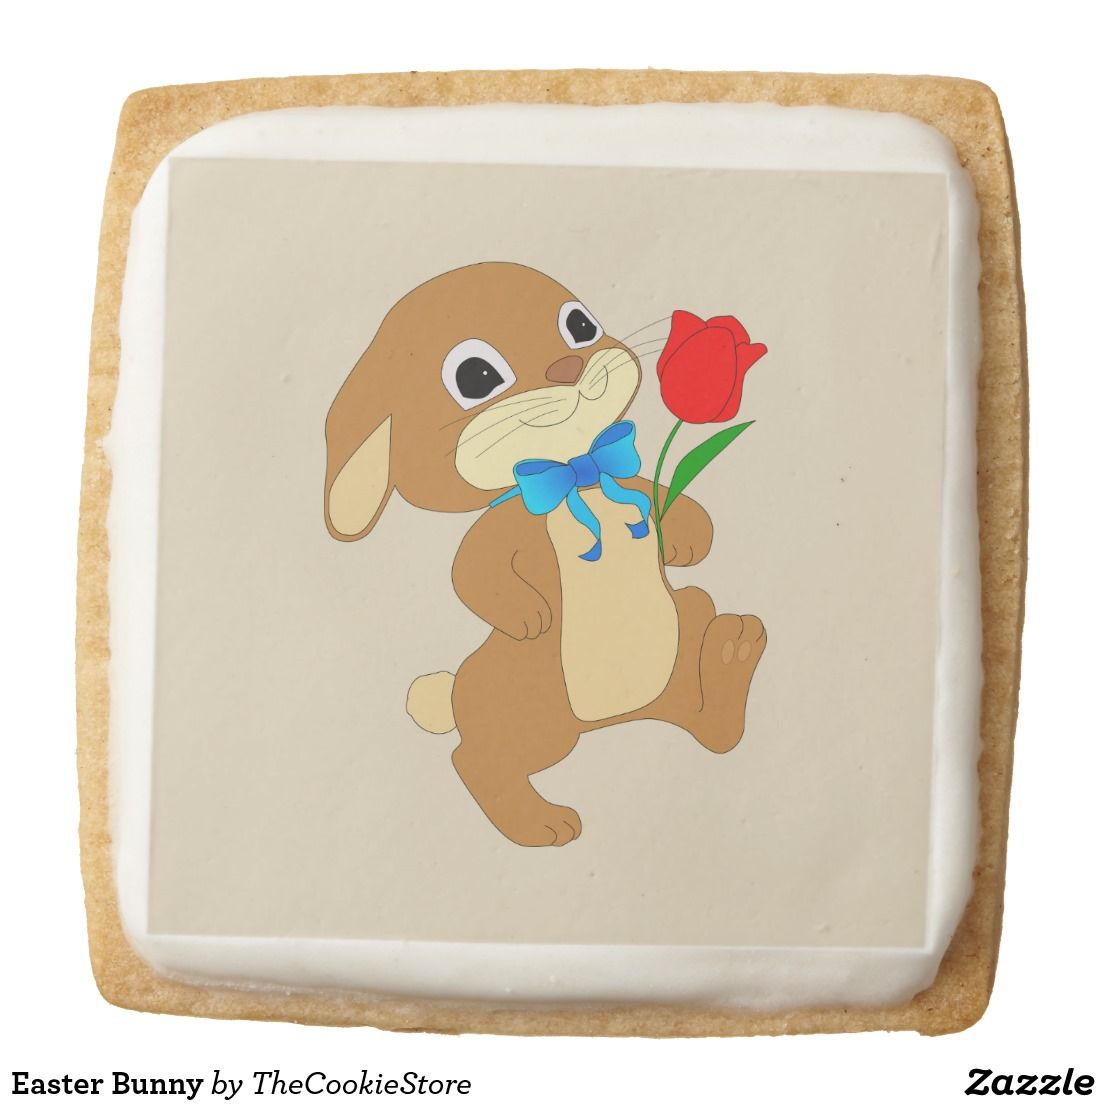 Easter bunny square shortbread cookie